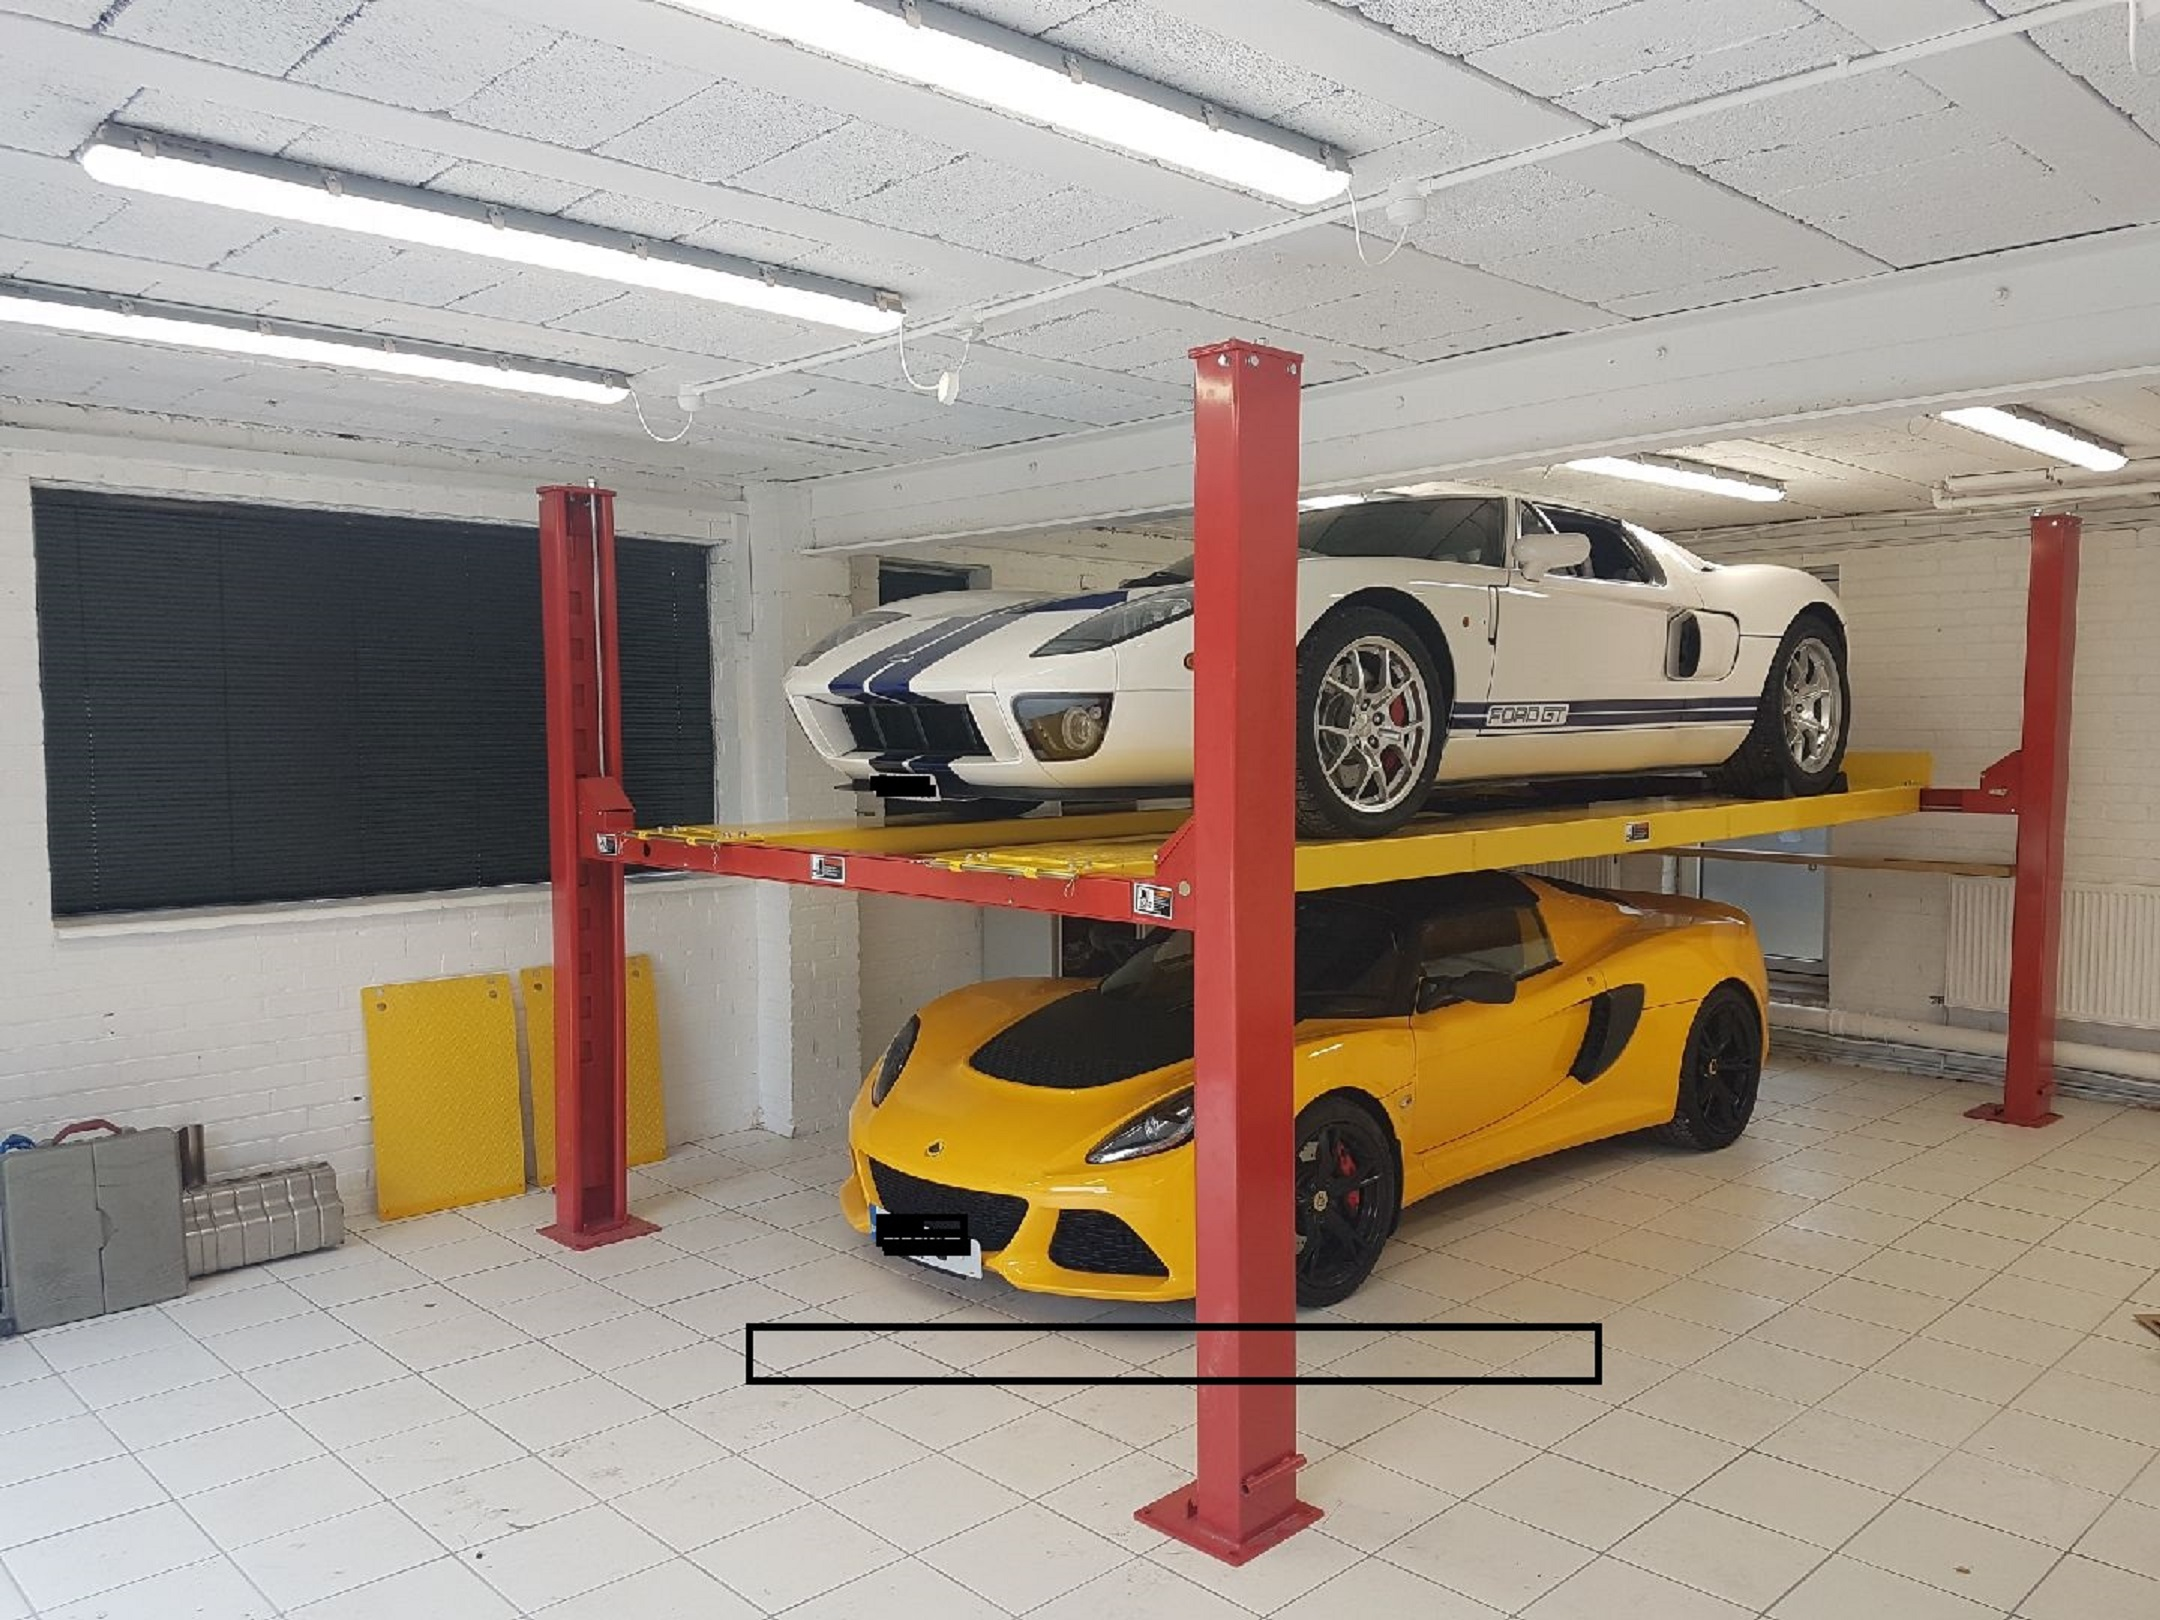 Garage Car Lift For Storage 4 Post Car Lifts Sjr Garage Equipment